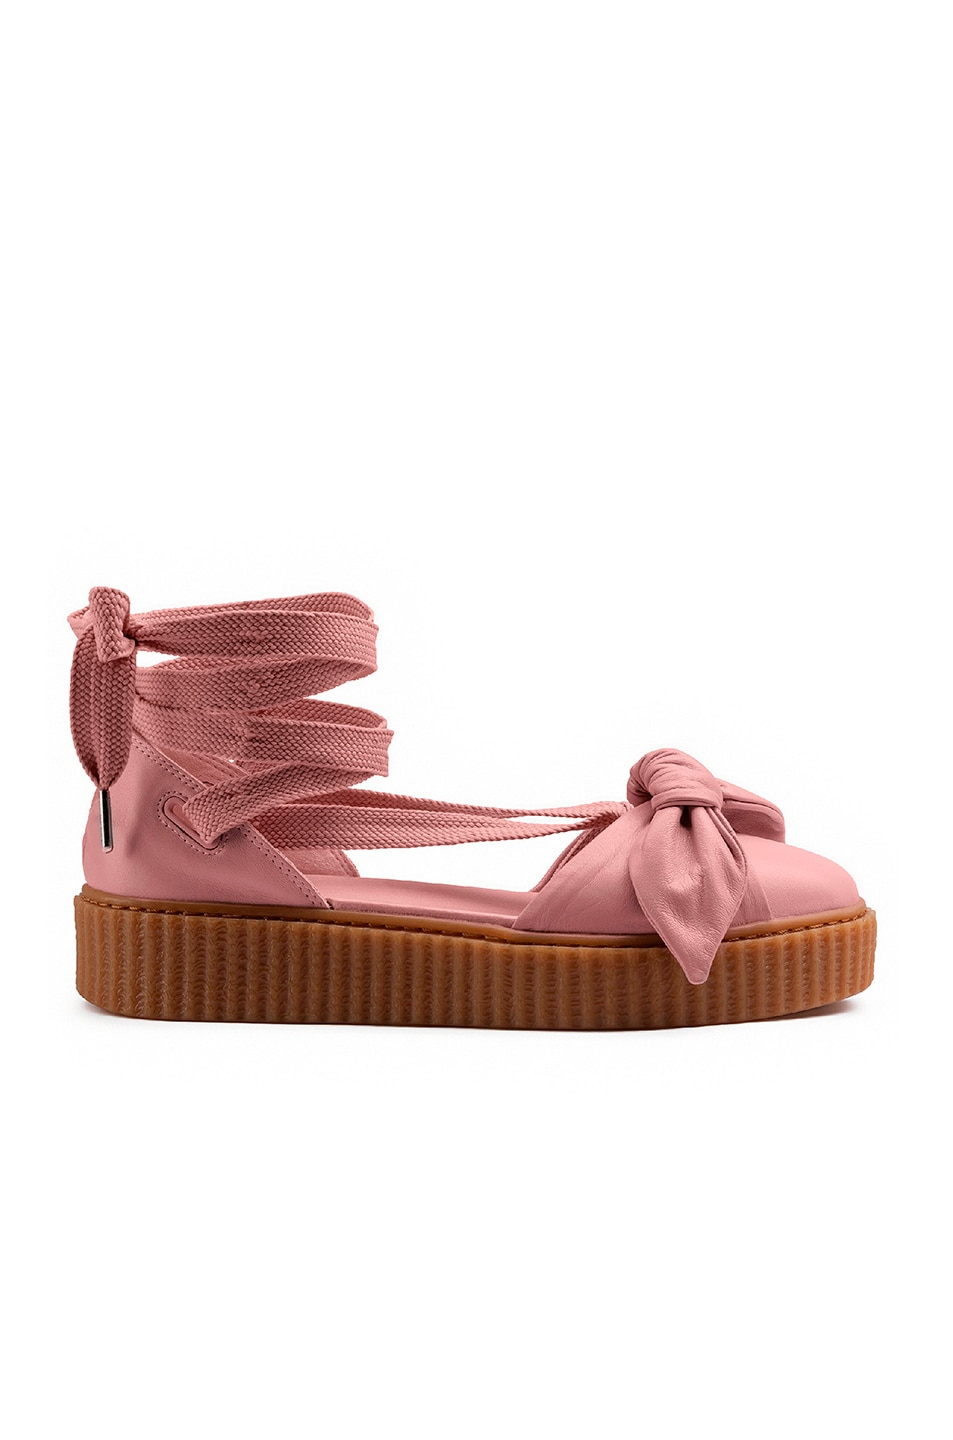 Image 1 of Fenty by Puma Bow Leather Creeper Sandals in Silver Pink & Oatmeal